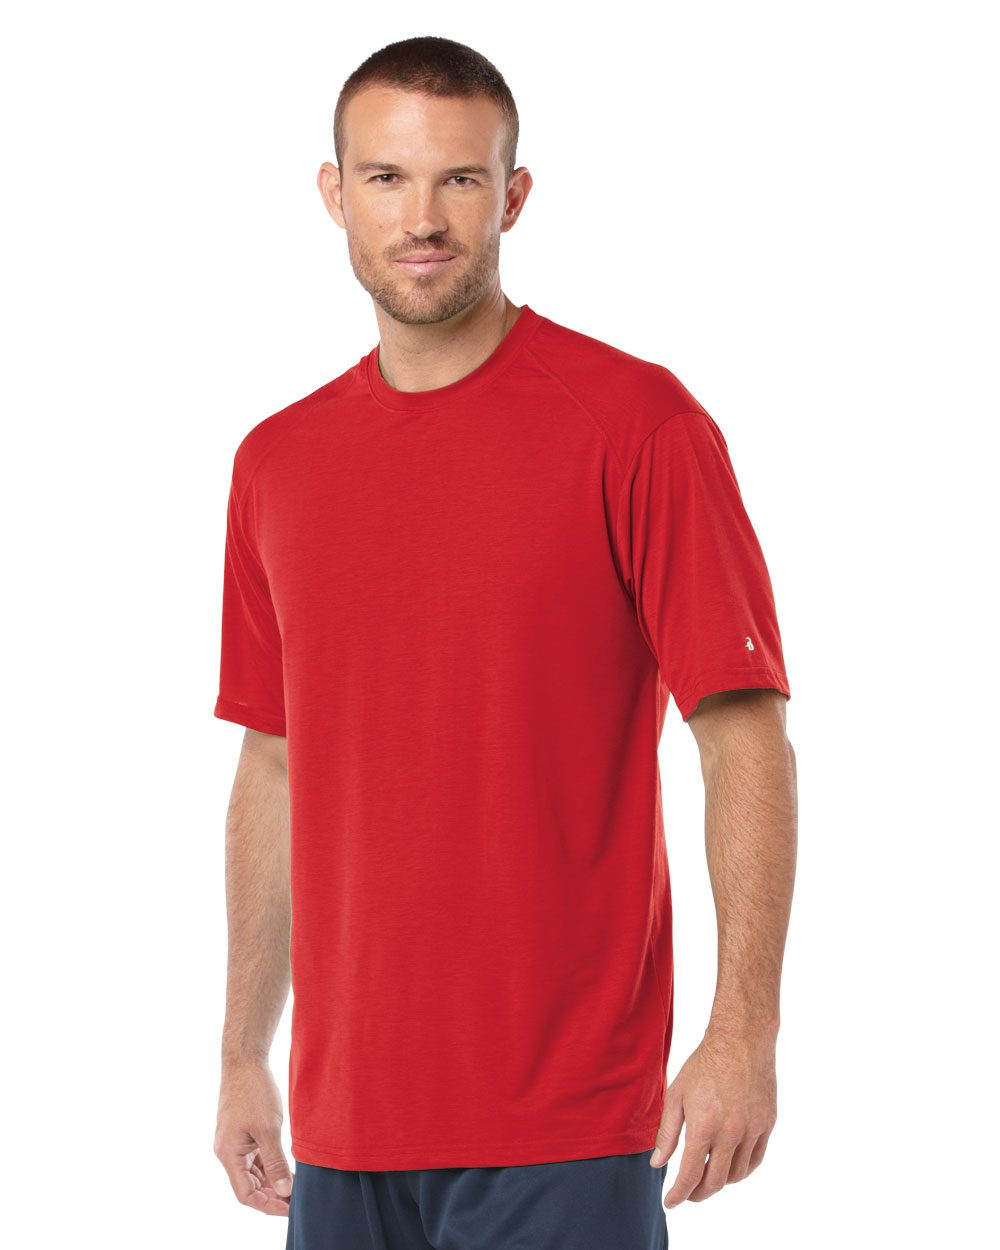 Badger Sport 4820 Short Sleeve Performance T-Shirt